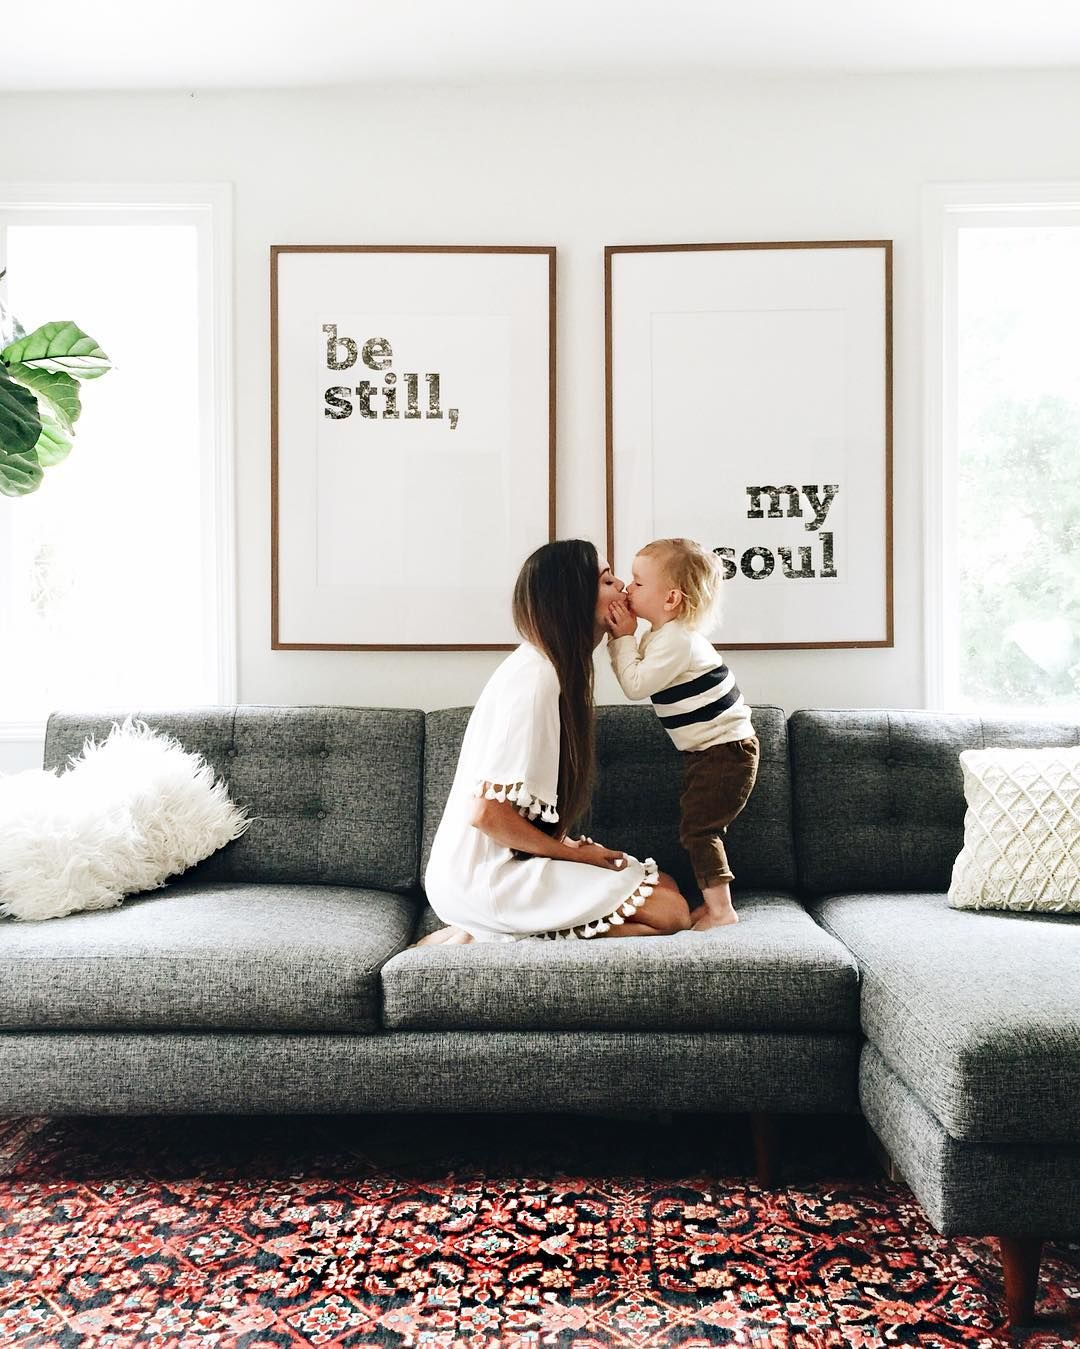 his new favorite game simple phrase with a special meaning can make a great diy art piece for a new home and that rug